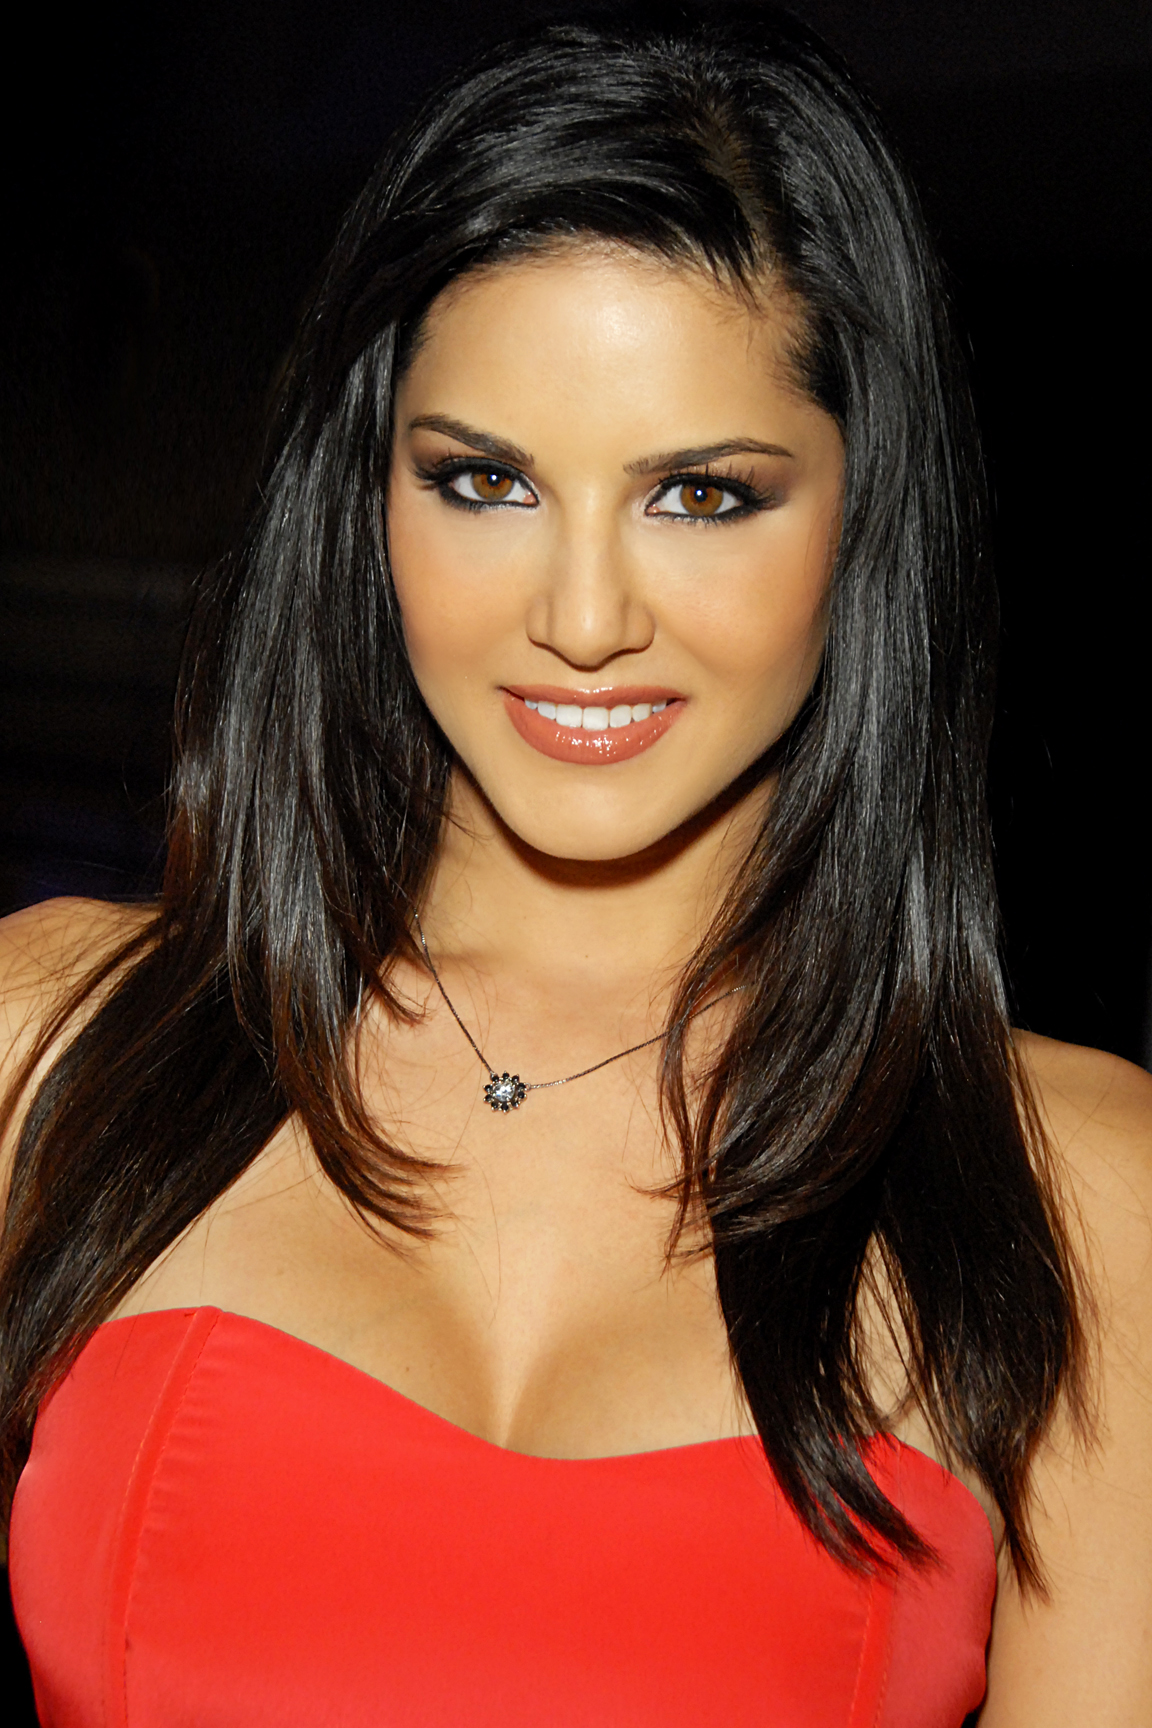 Description Sunny Leone 2012.jpg